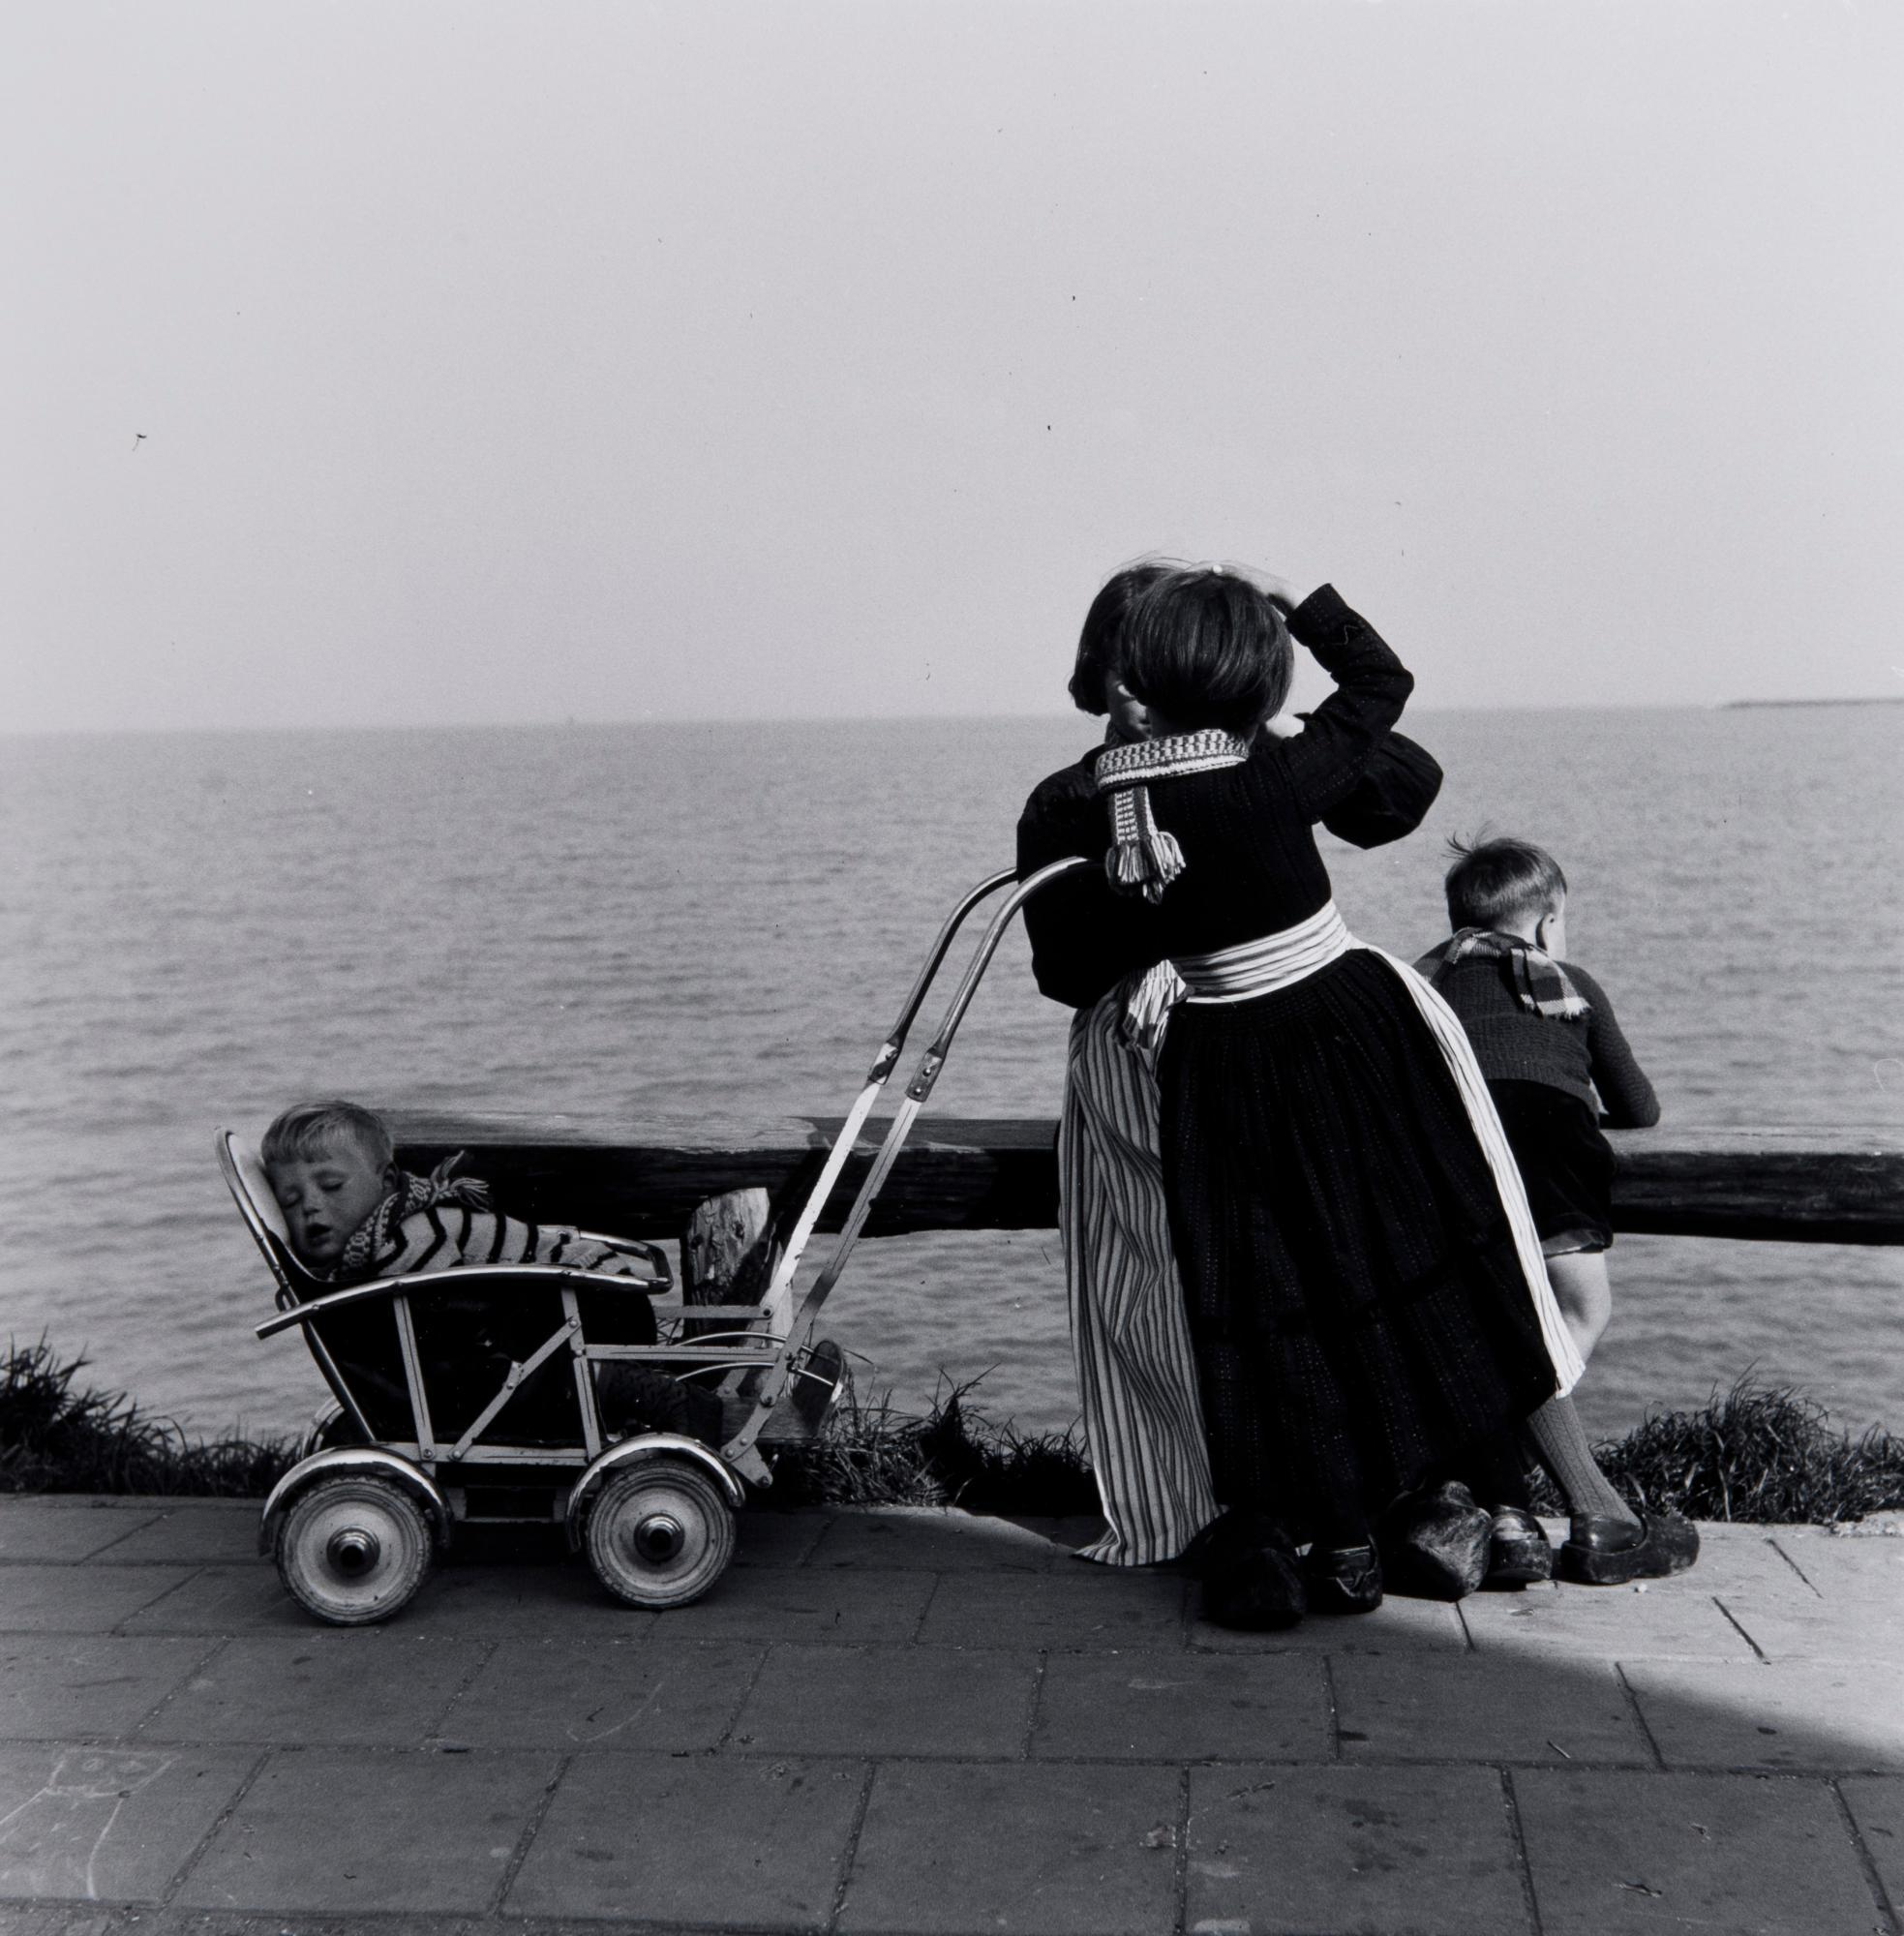 Voddam, Holland (baby in pram)